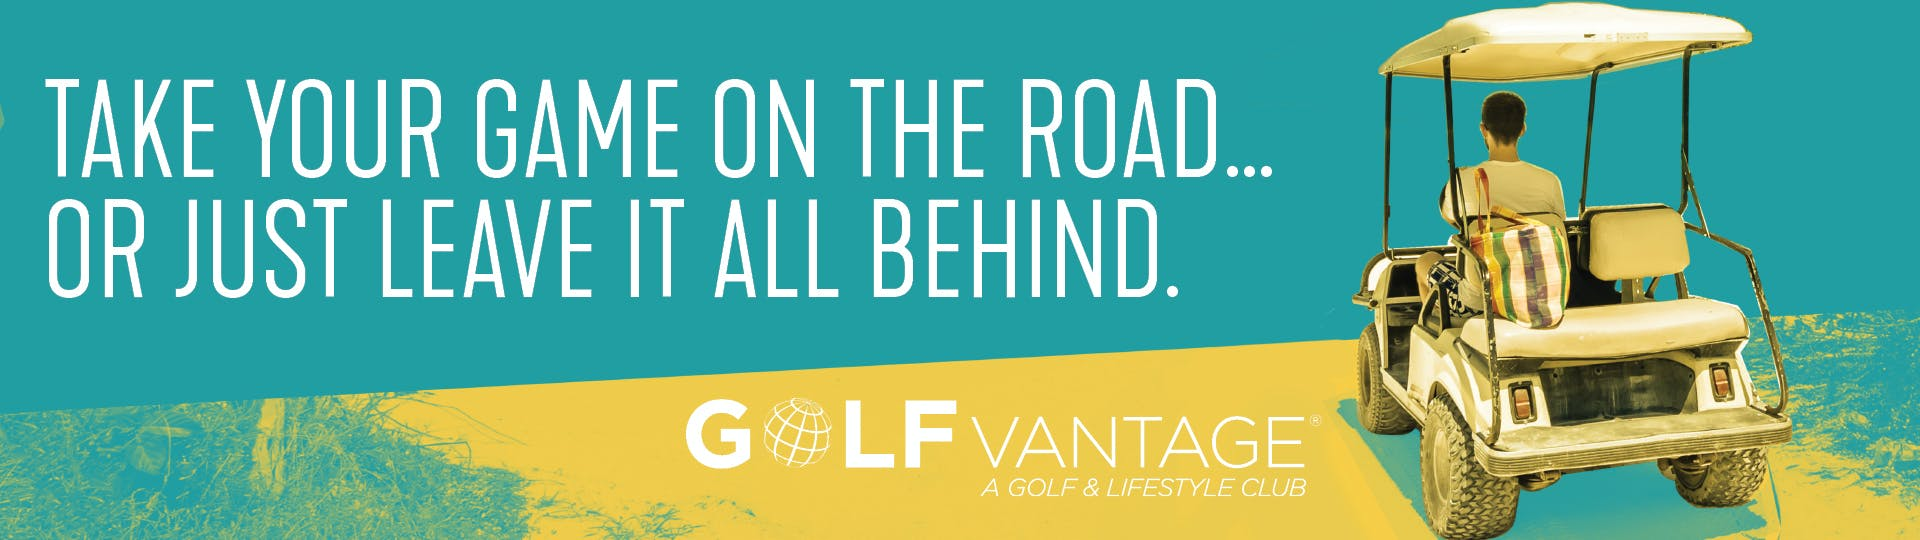 Take your game on the road...or just leave it all behind. GOLFvantage, a golf & lifestyle club.